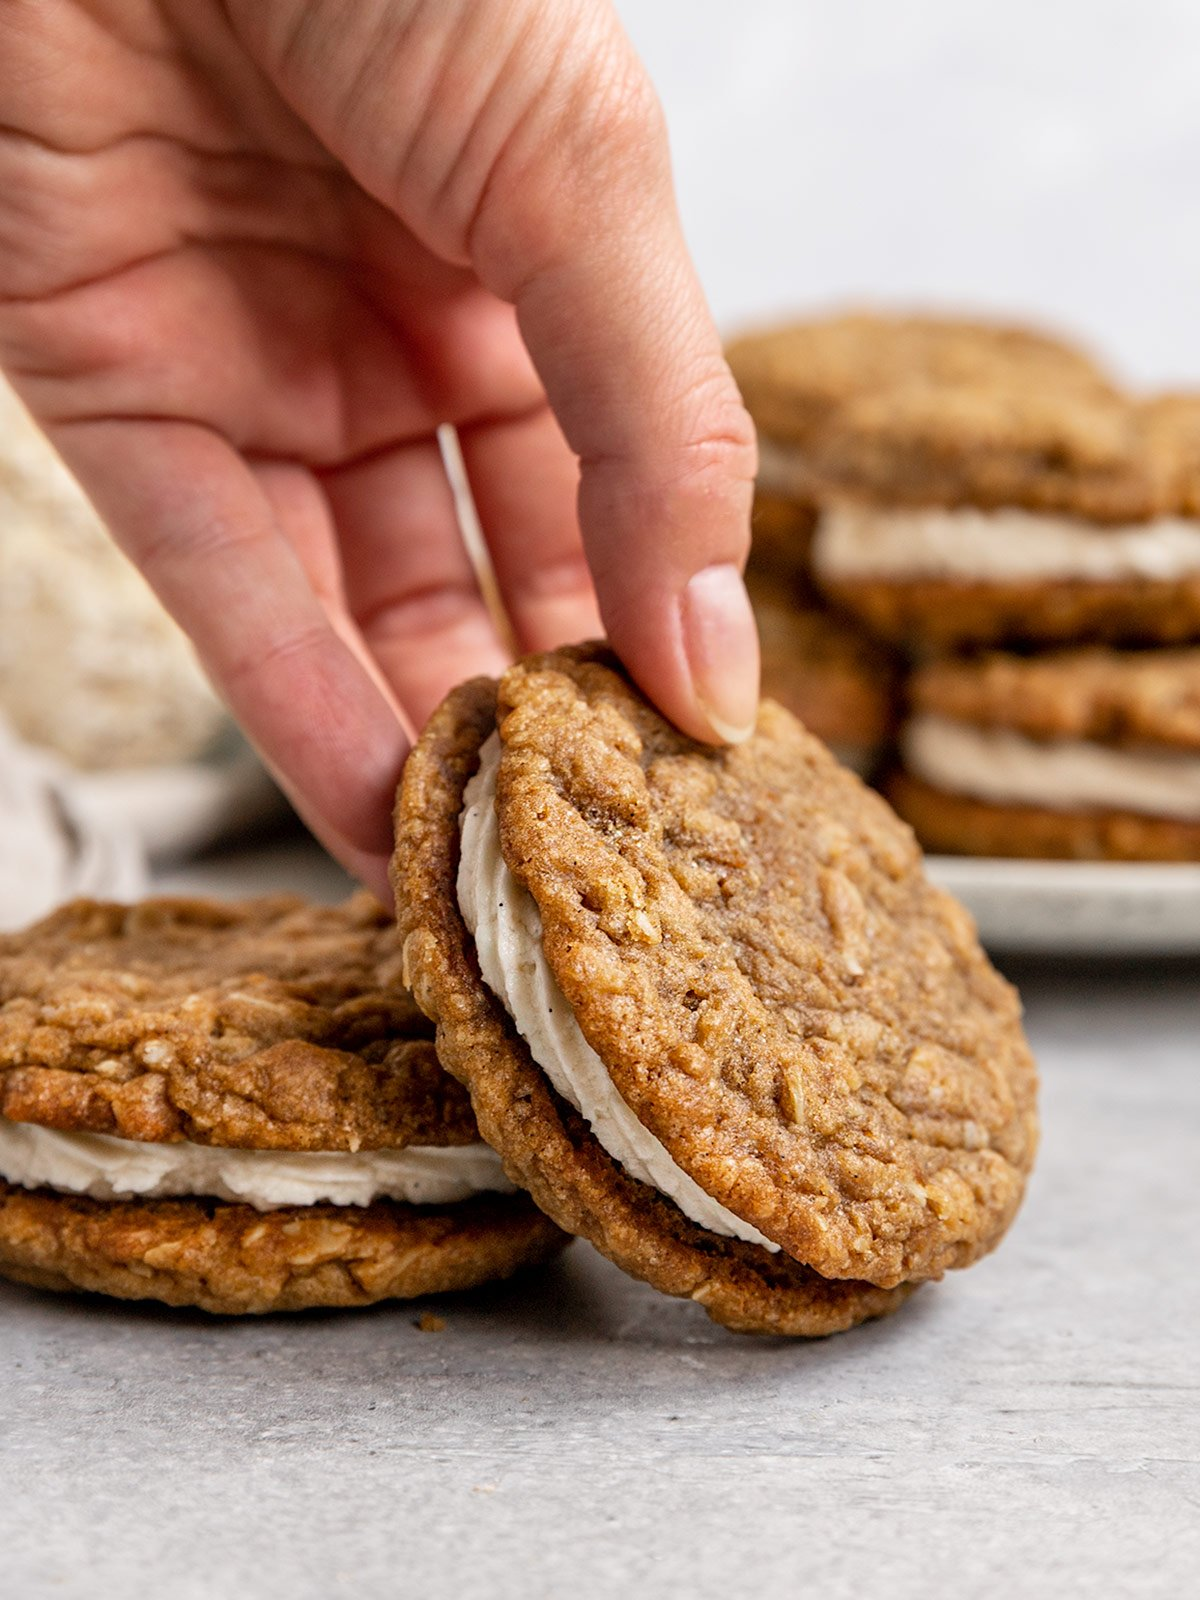 hand picking up an oatmeal cream pie cookie